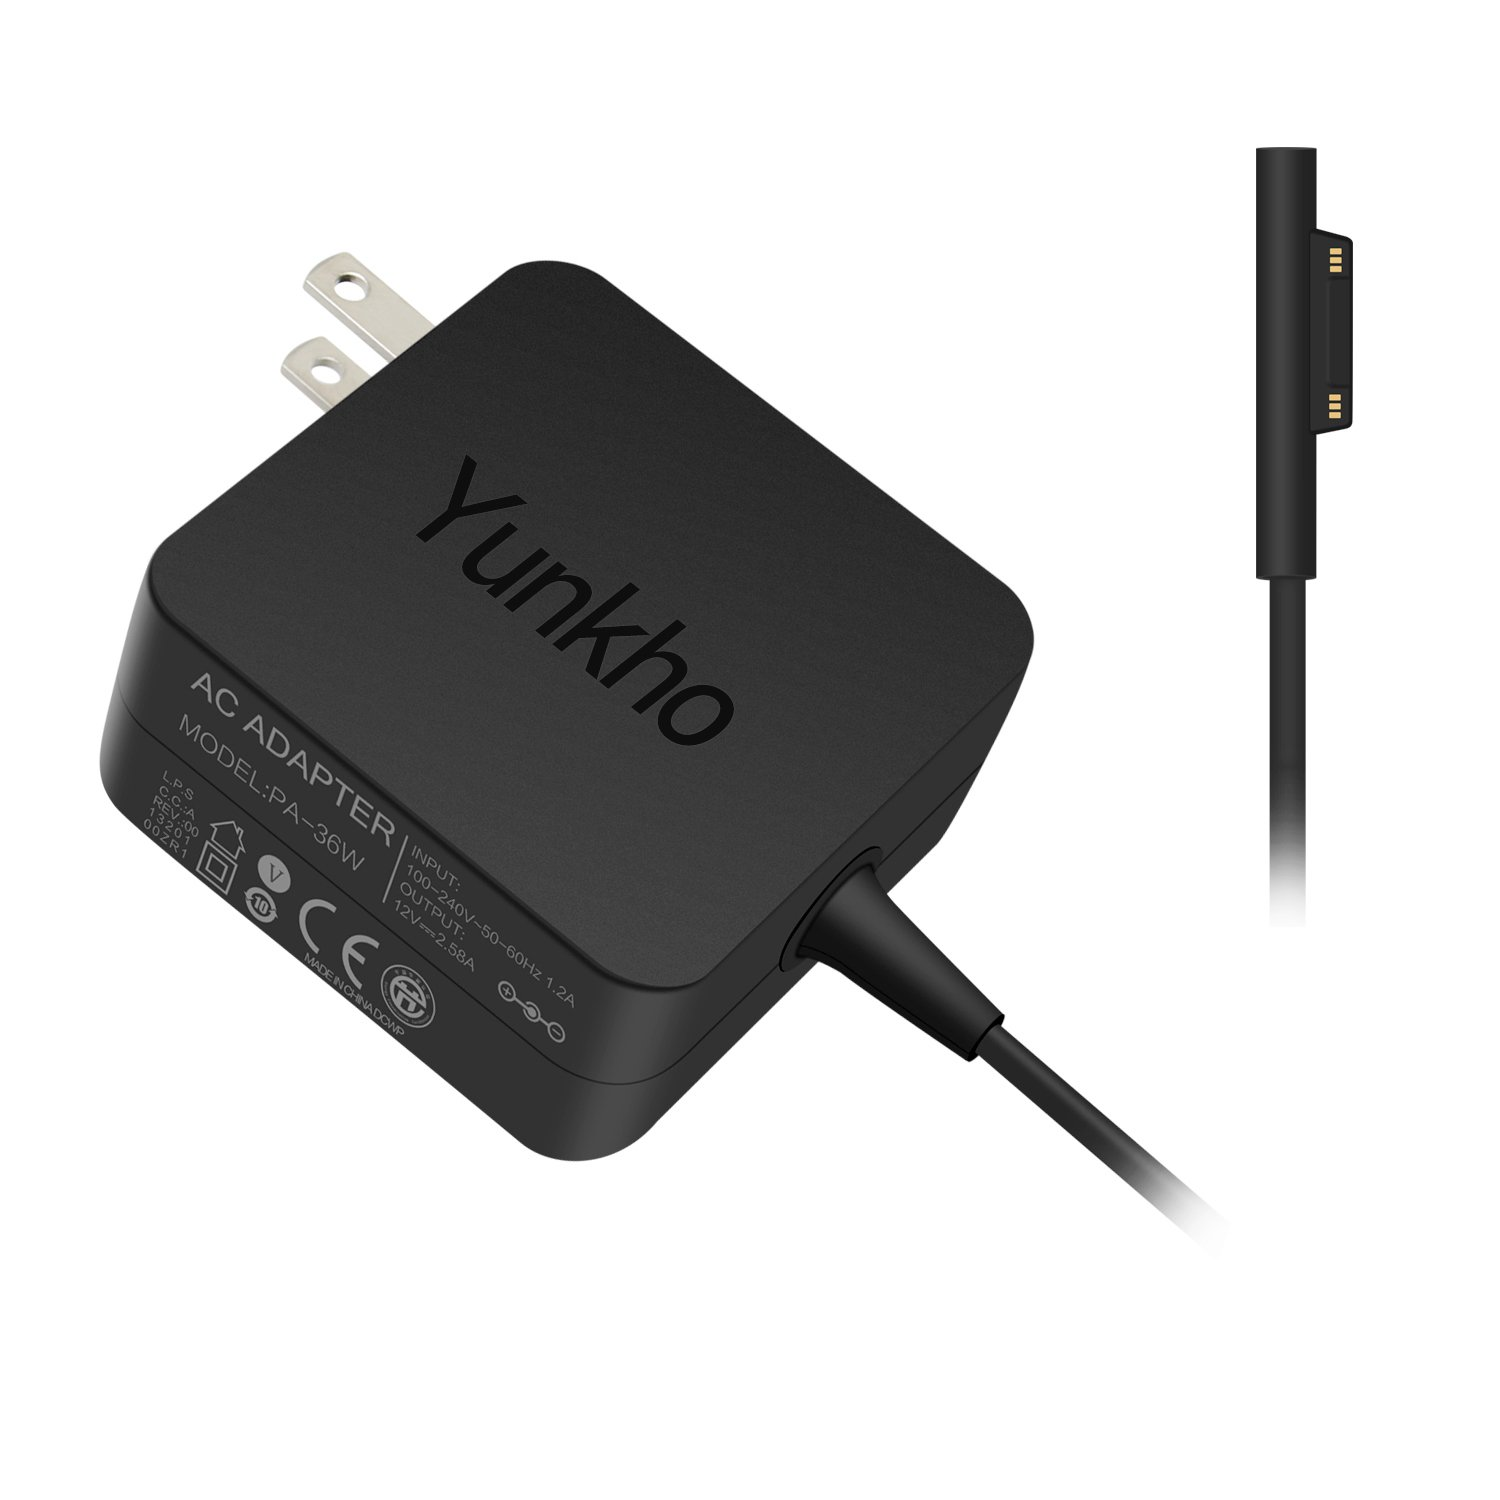 Yunkho Surface Power Supply Adapter, 36W 12V 2.58A Charger for Microsoft Surface Pro 3 /Pro 4 i5 i7 Tablet with 5.4Ft Power Cord